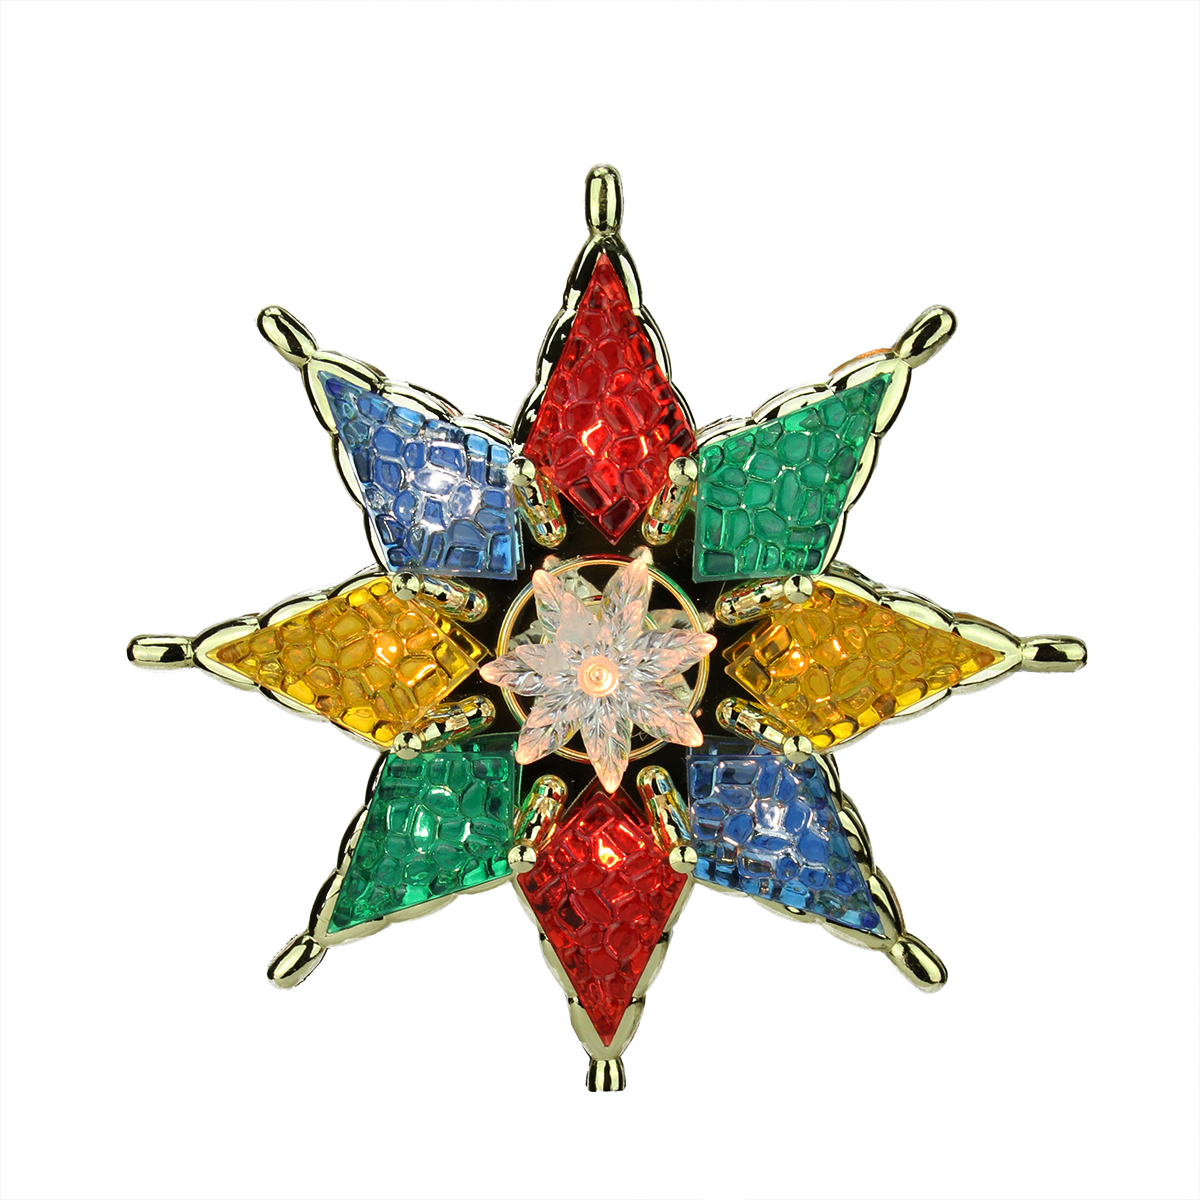 "7.75"" Lighted Multi-Color Mosiac Style Star Christmas Tree Topper - Clear Lights"